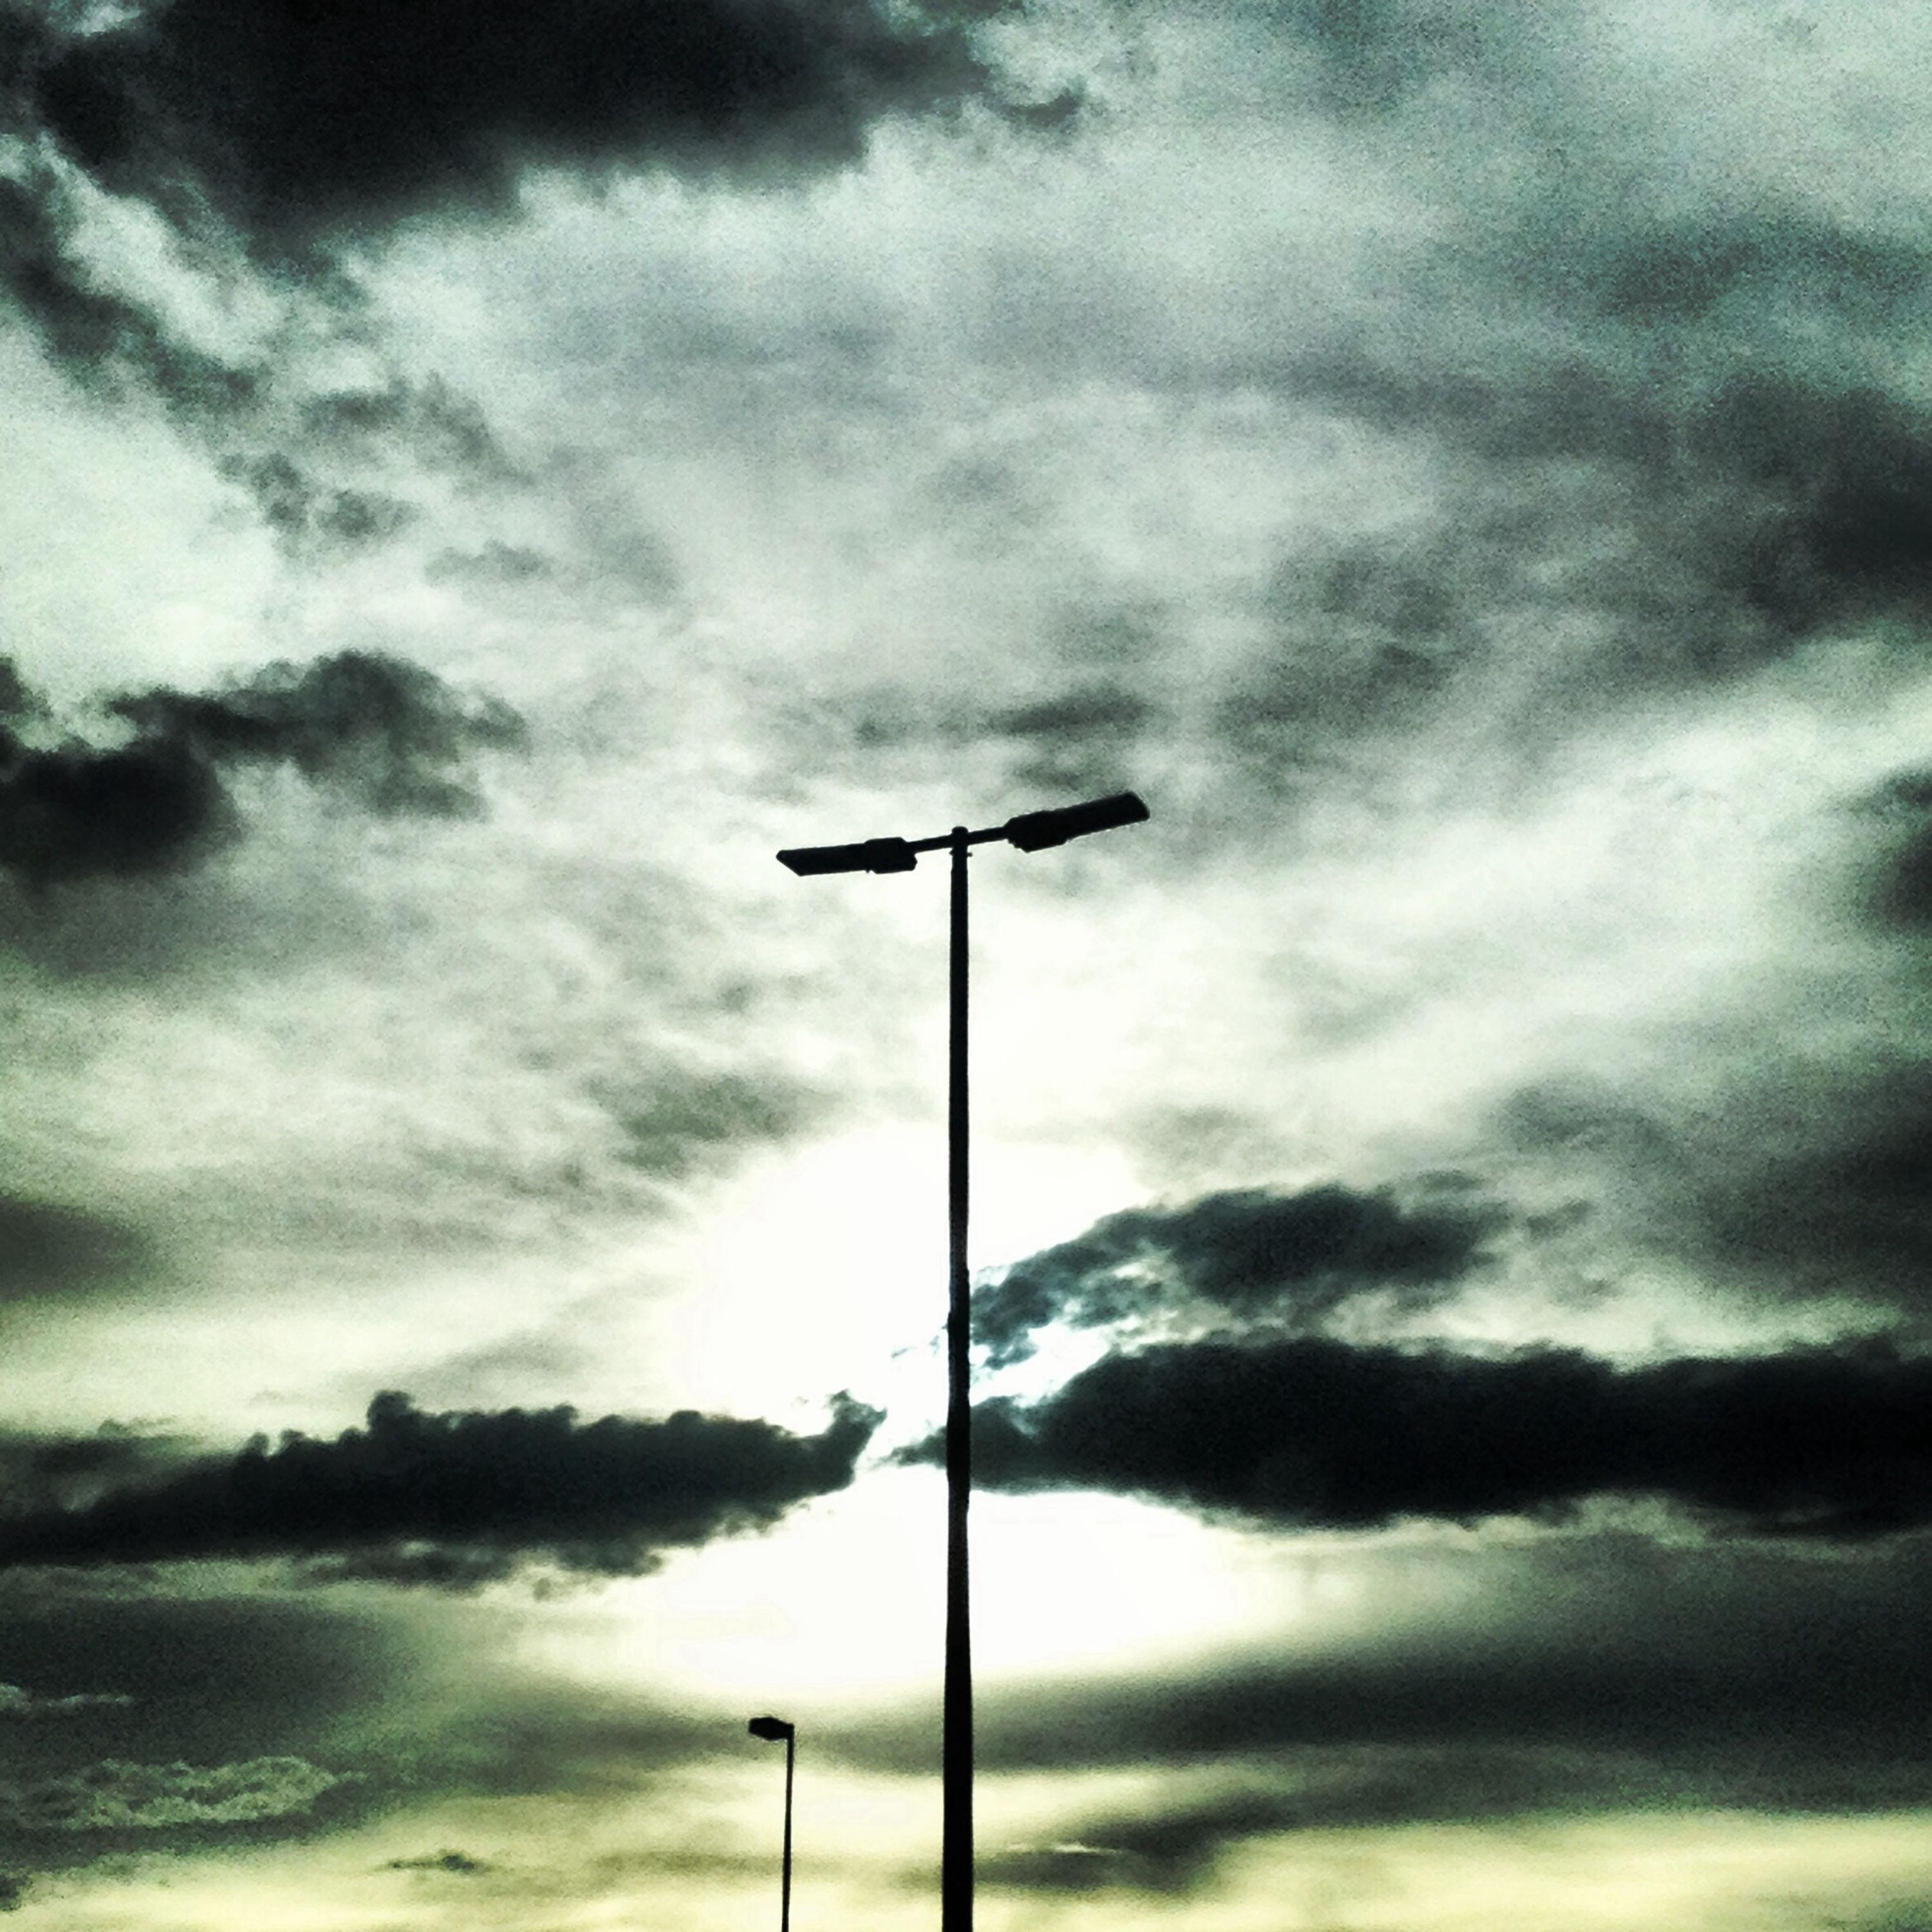 sky, street light, cloud - sky, cloudy, low angle view, weather, lighting equipment, cloud, tranquility, overcast, pole, nature, silhouette, beauty in nature, tranquil scene, scenics, dusk, outdoors, storm cloud, dramatic sky